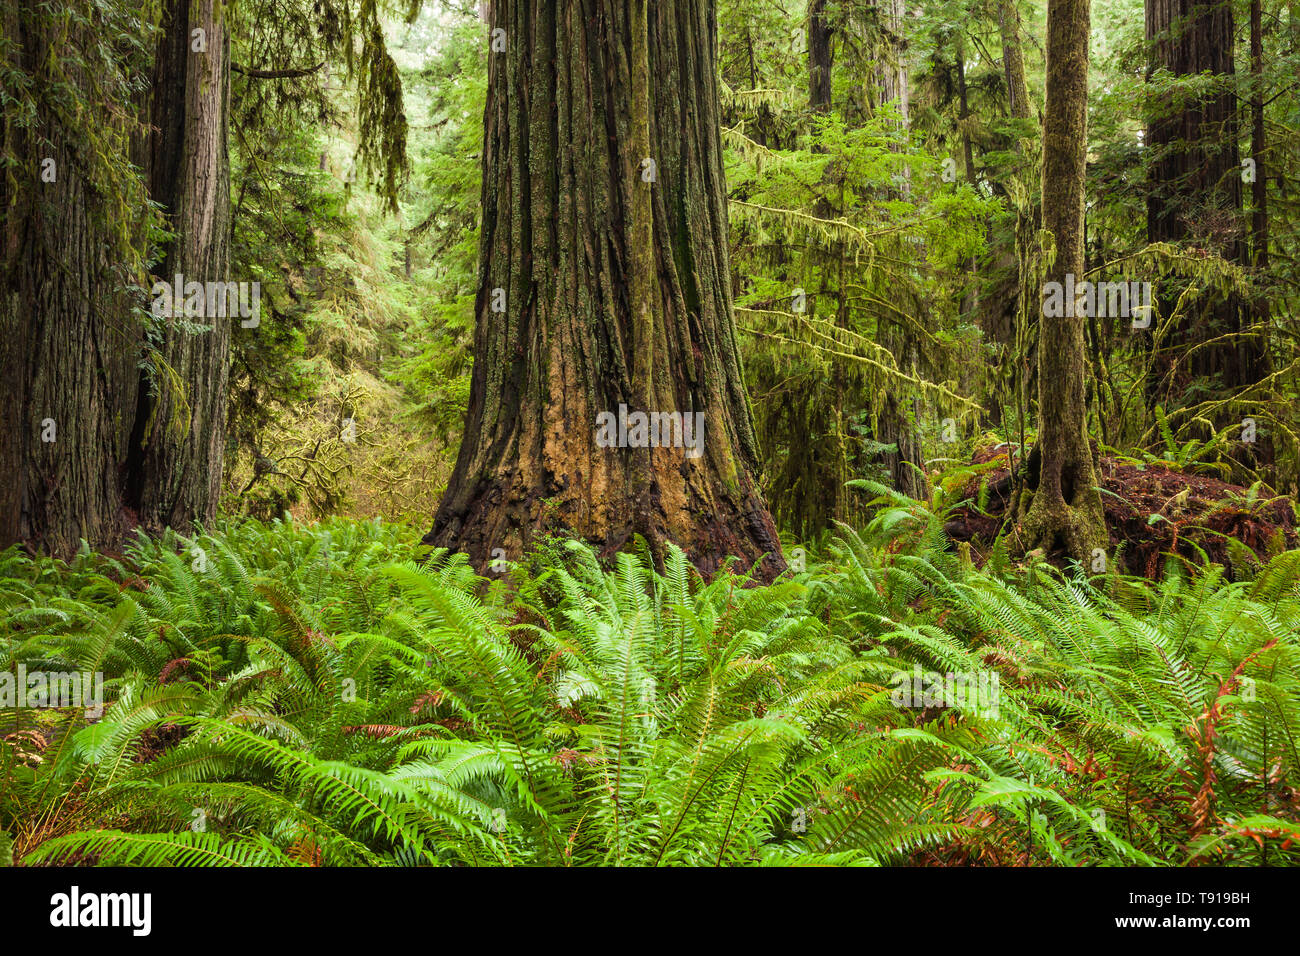 Ferns and Redwood trees. Jedediah Smith State Park, California, USA. - Stock Image